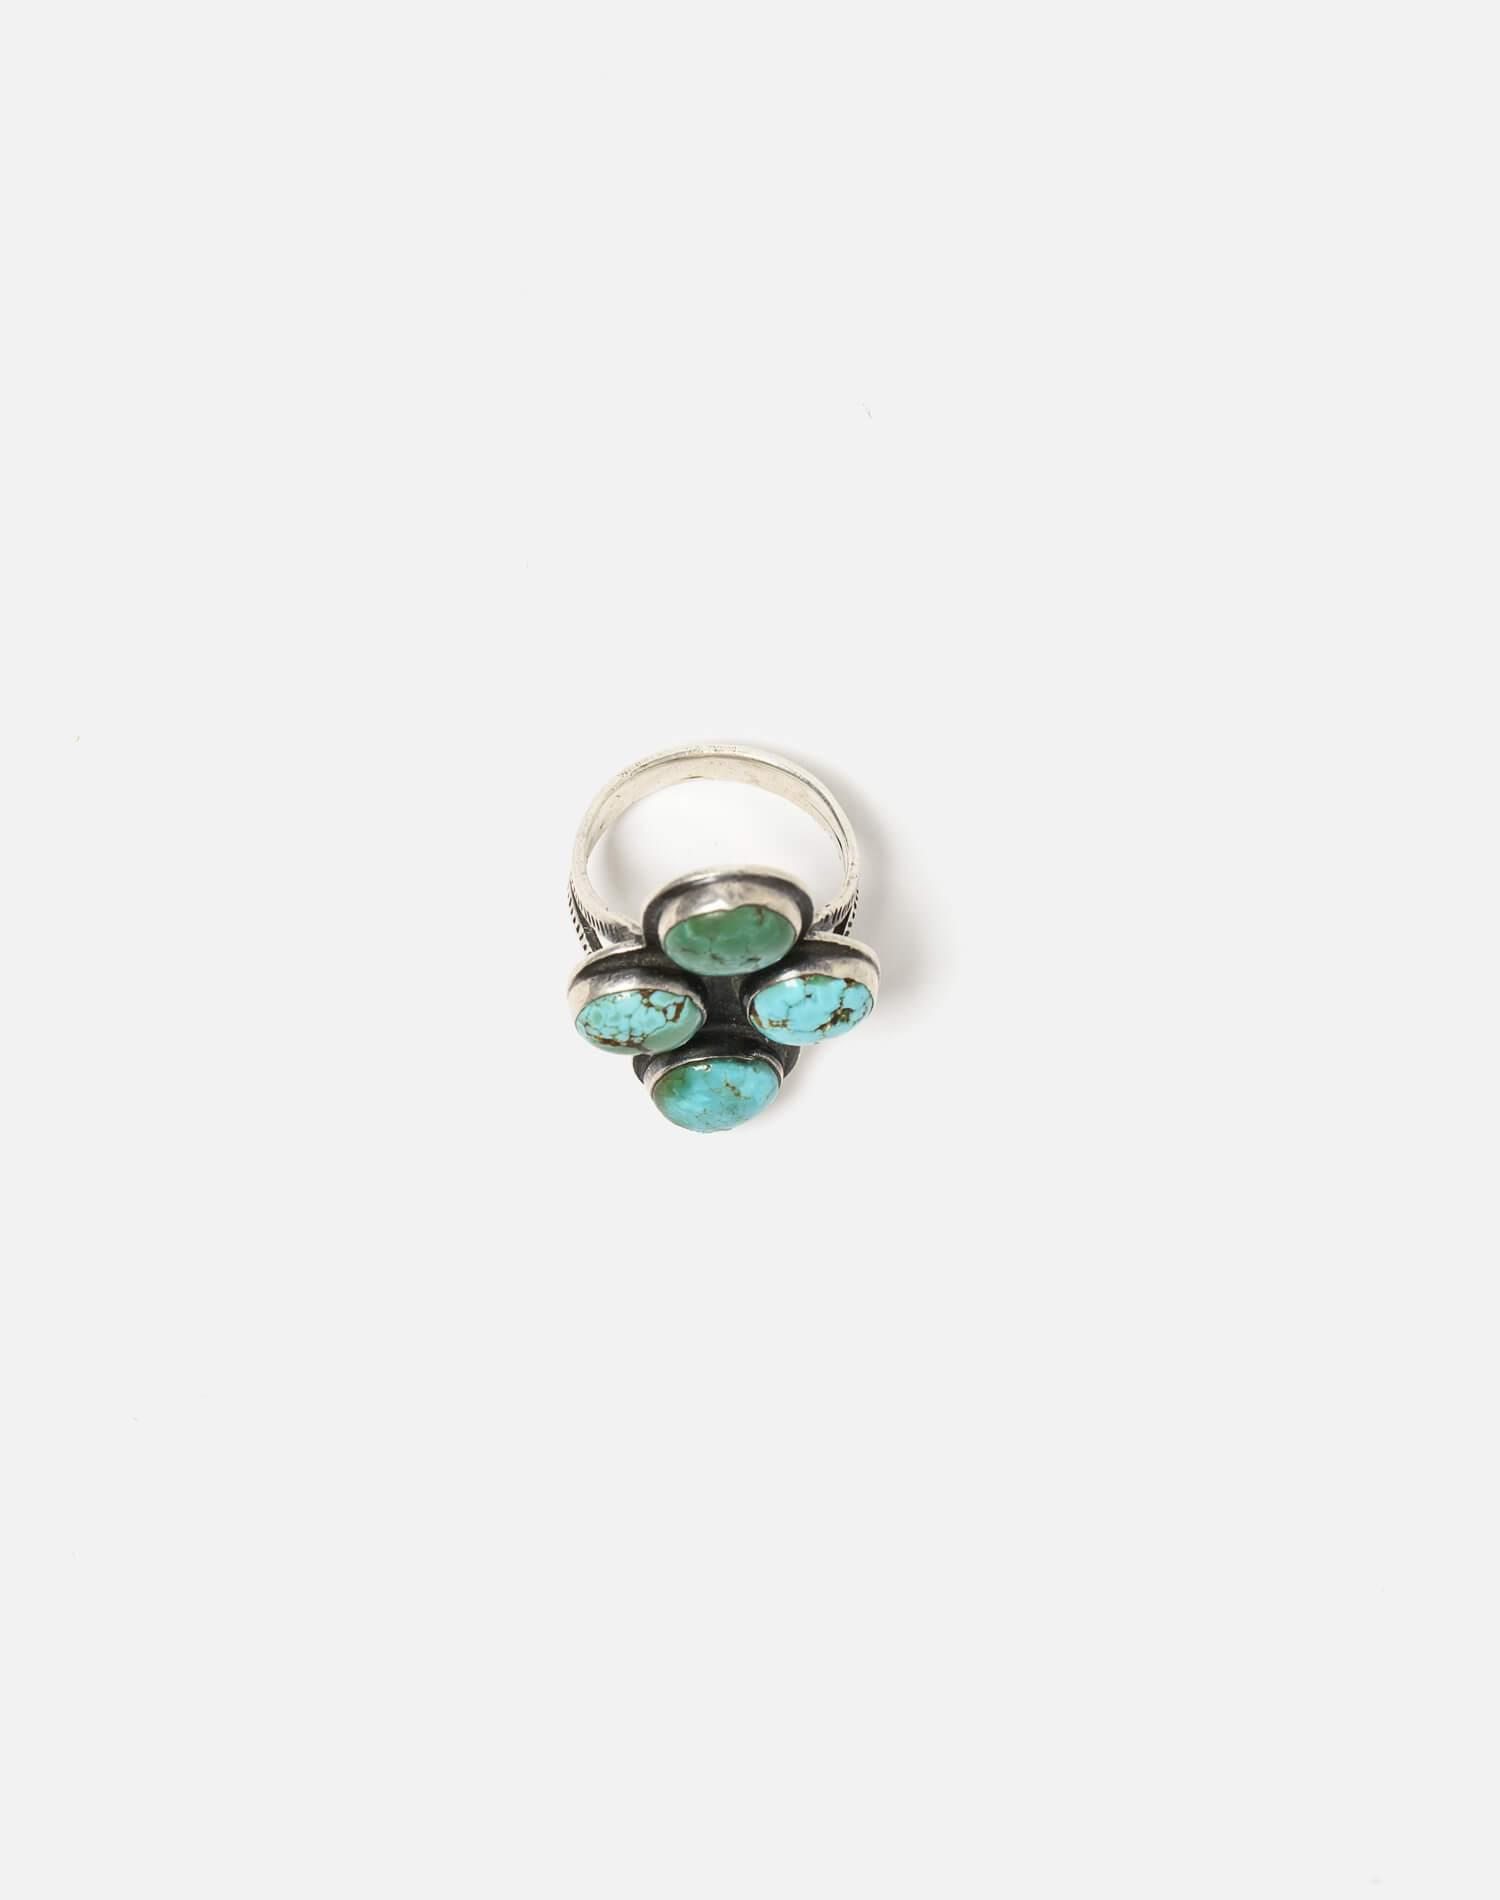 1930s Navajo Spilt Shank Sterling And Turquoise Stone Ring - #94 3